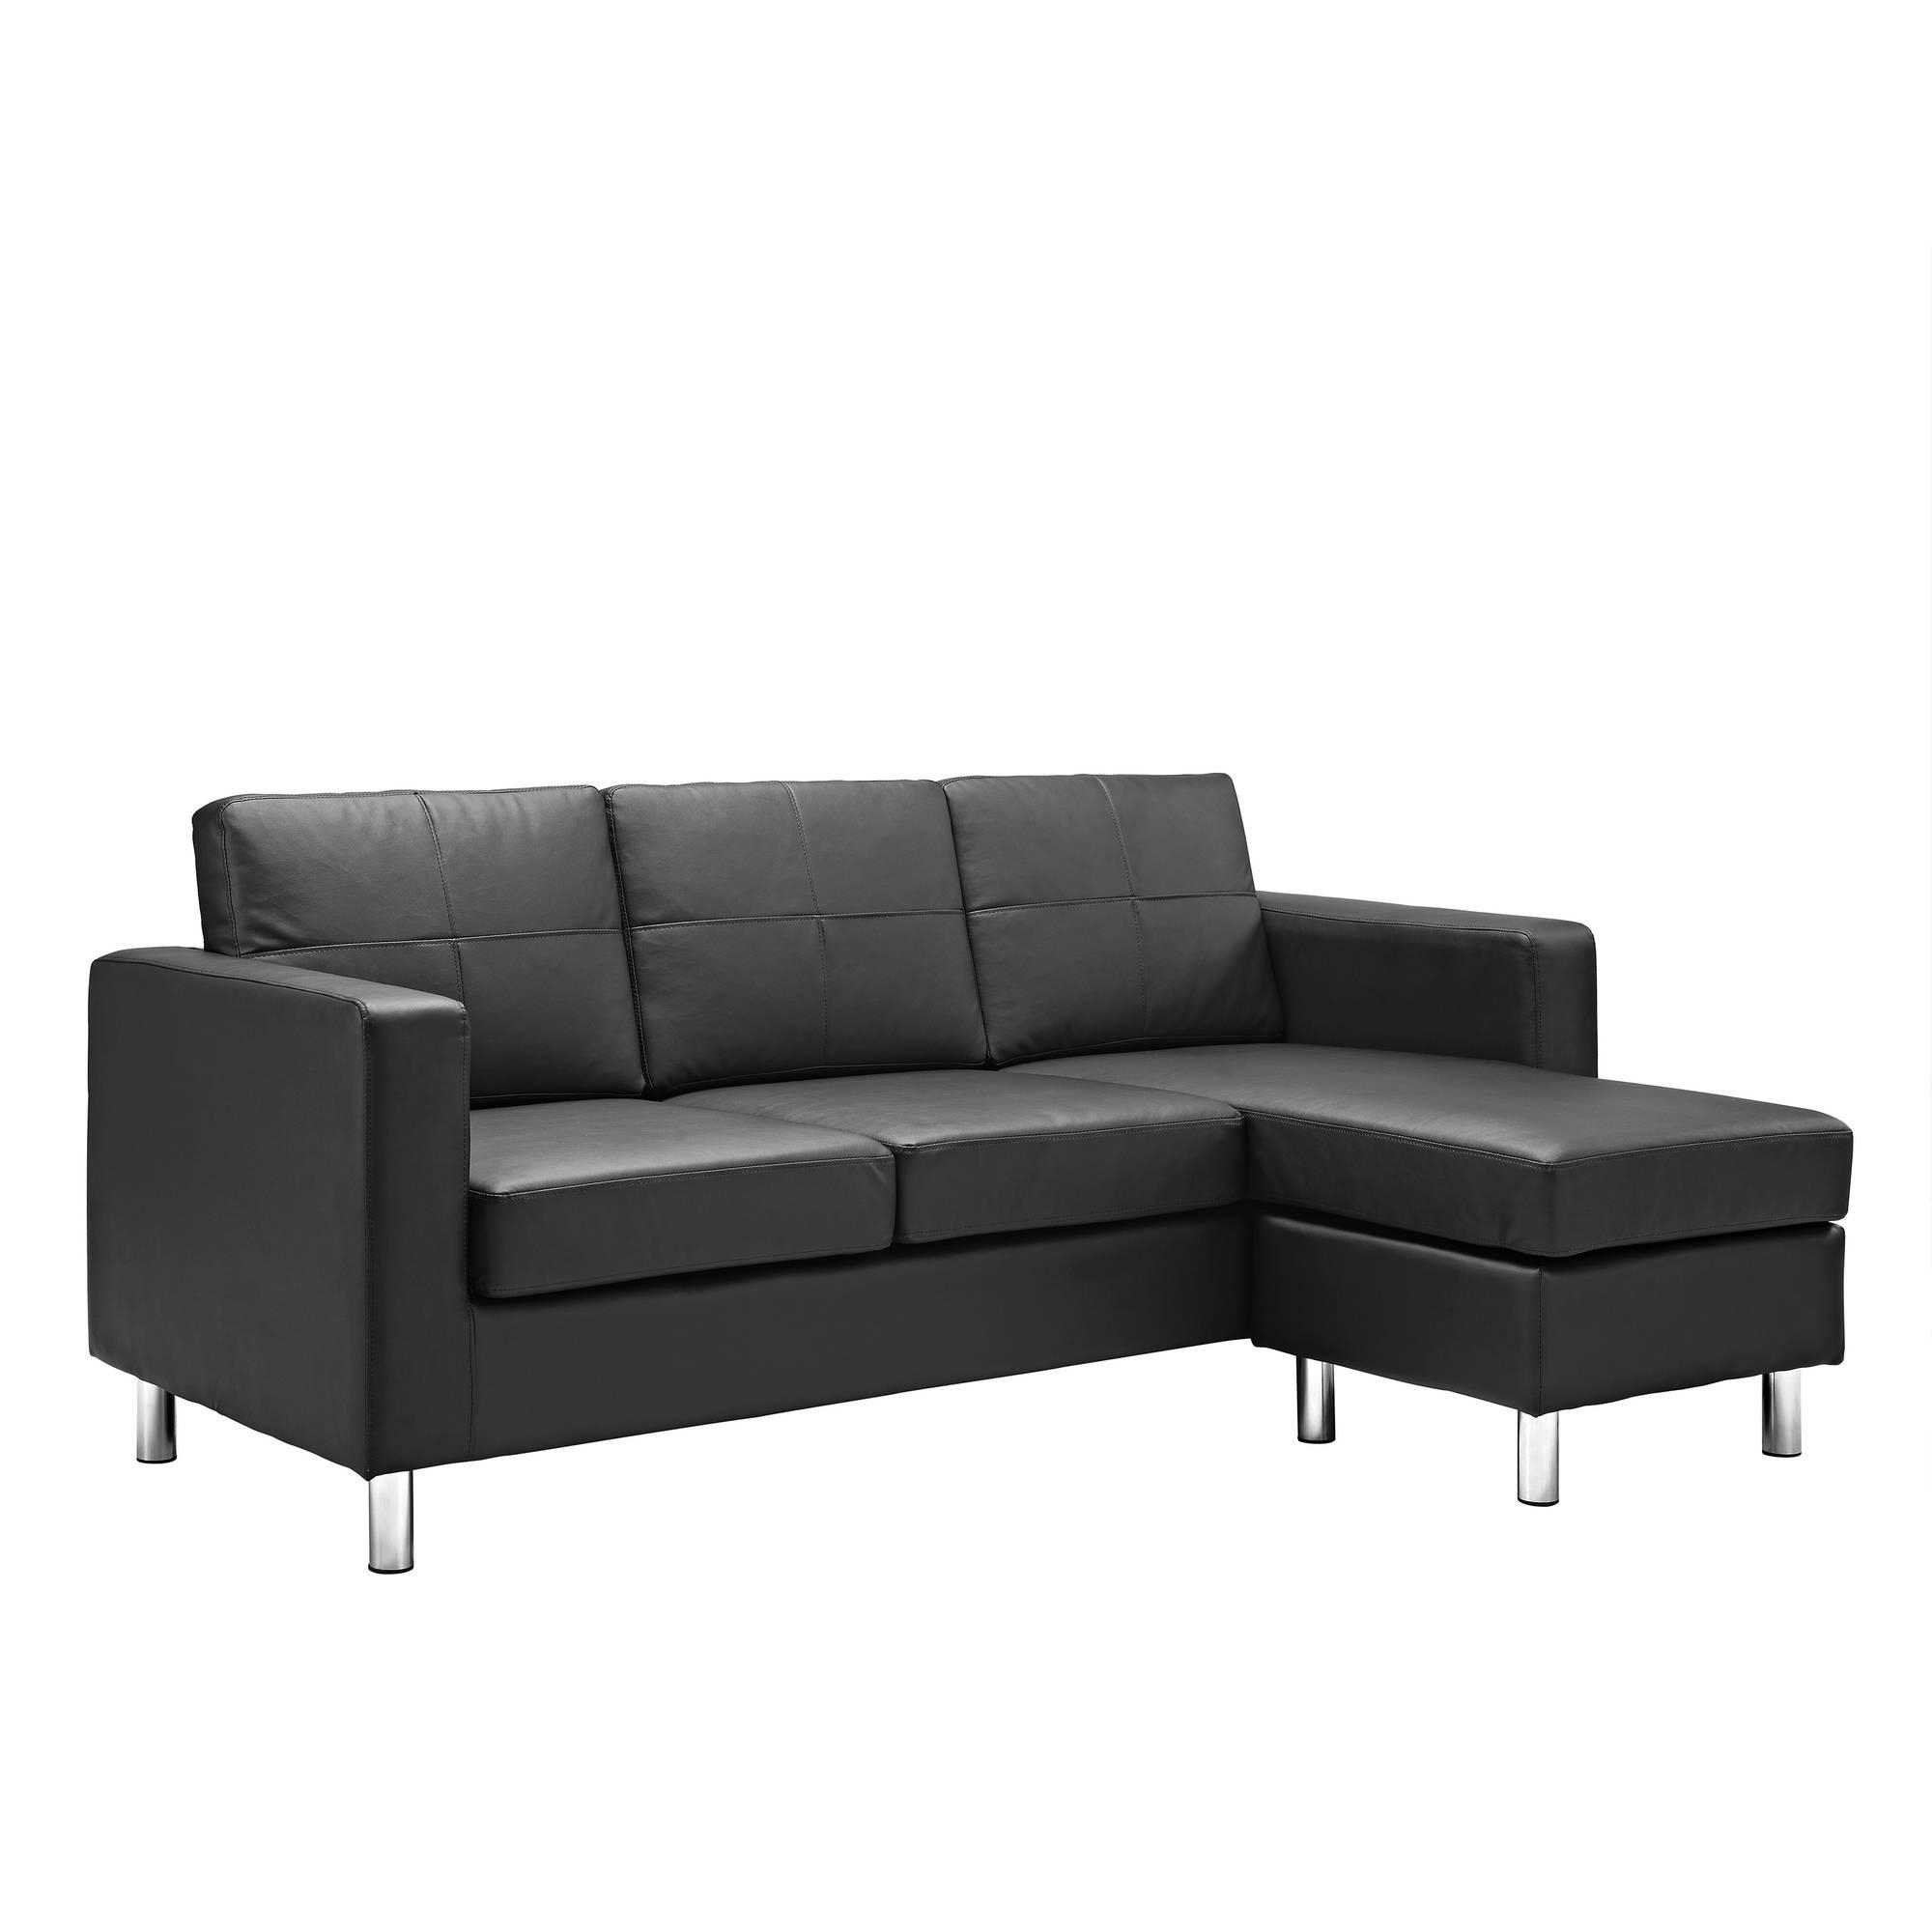 Dorel Living Small Spaces Configurable Sectional Sofa, Multiple For Wallmart Sofa (Image 8 of 20)